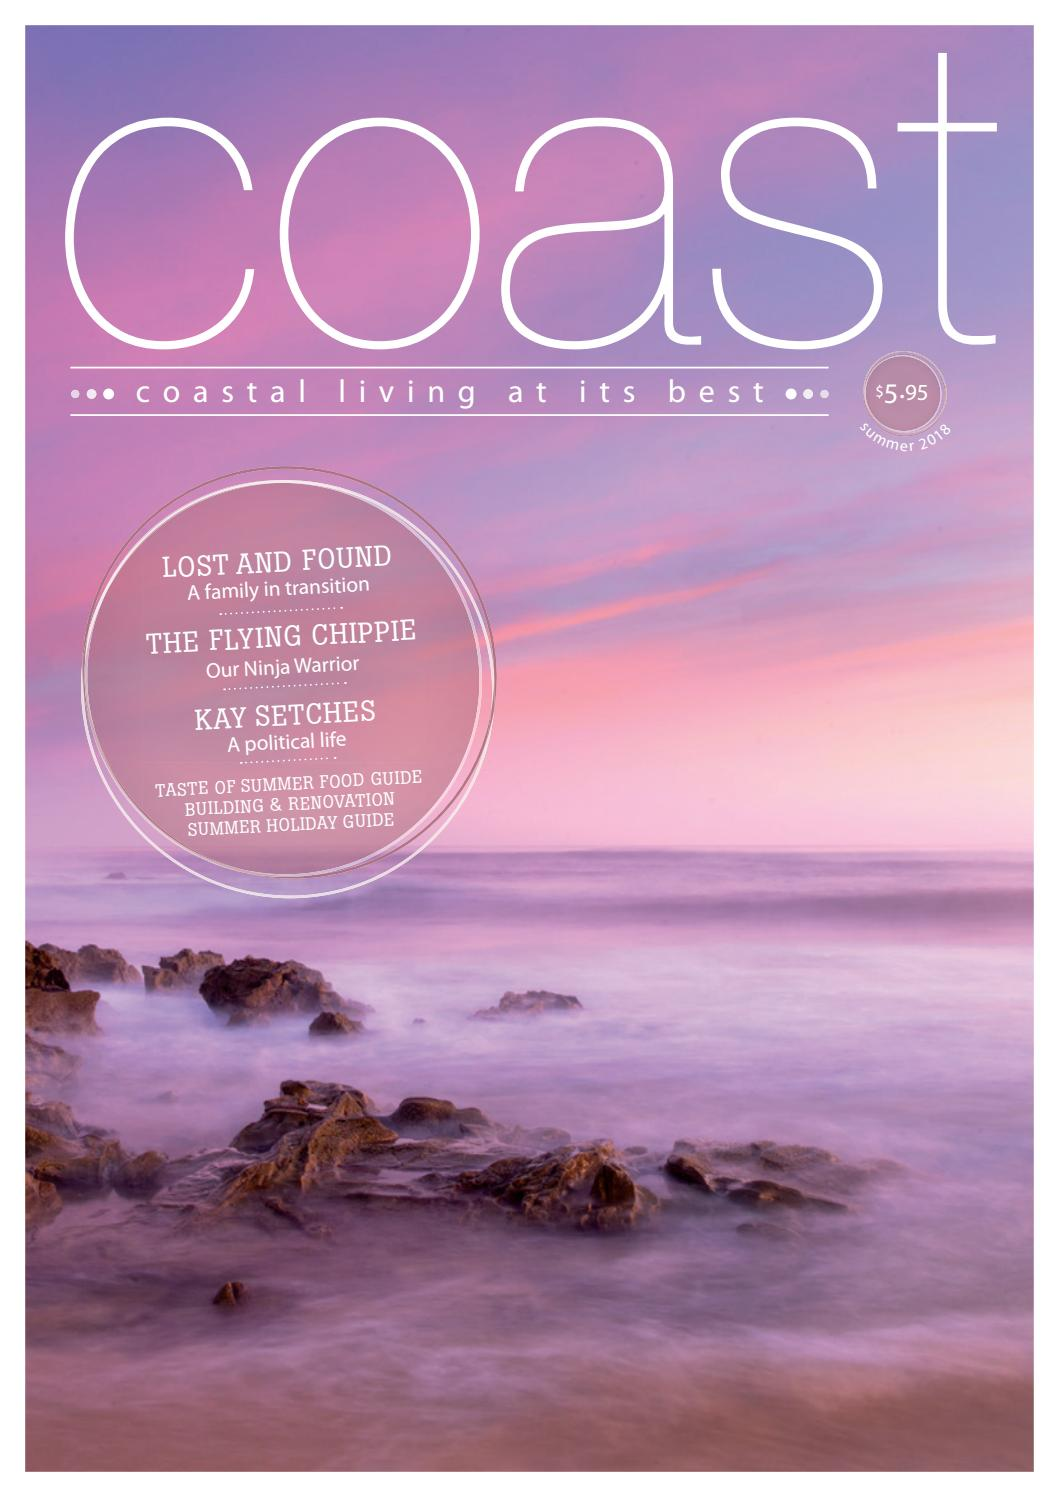 Coast magazine summer 2018 by Coast Media Pty Ltd - issuu